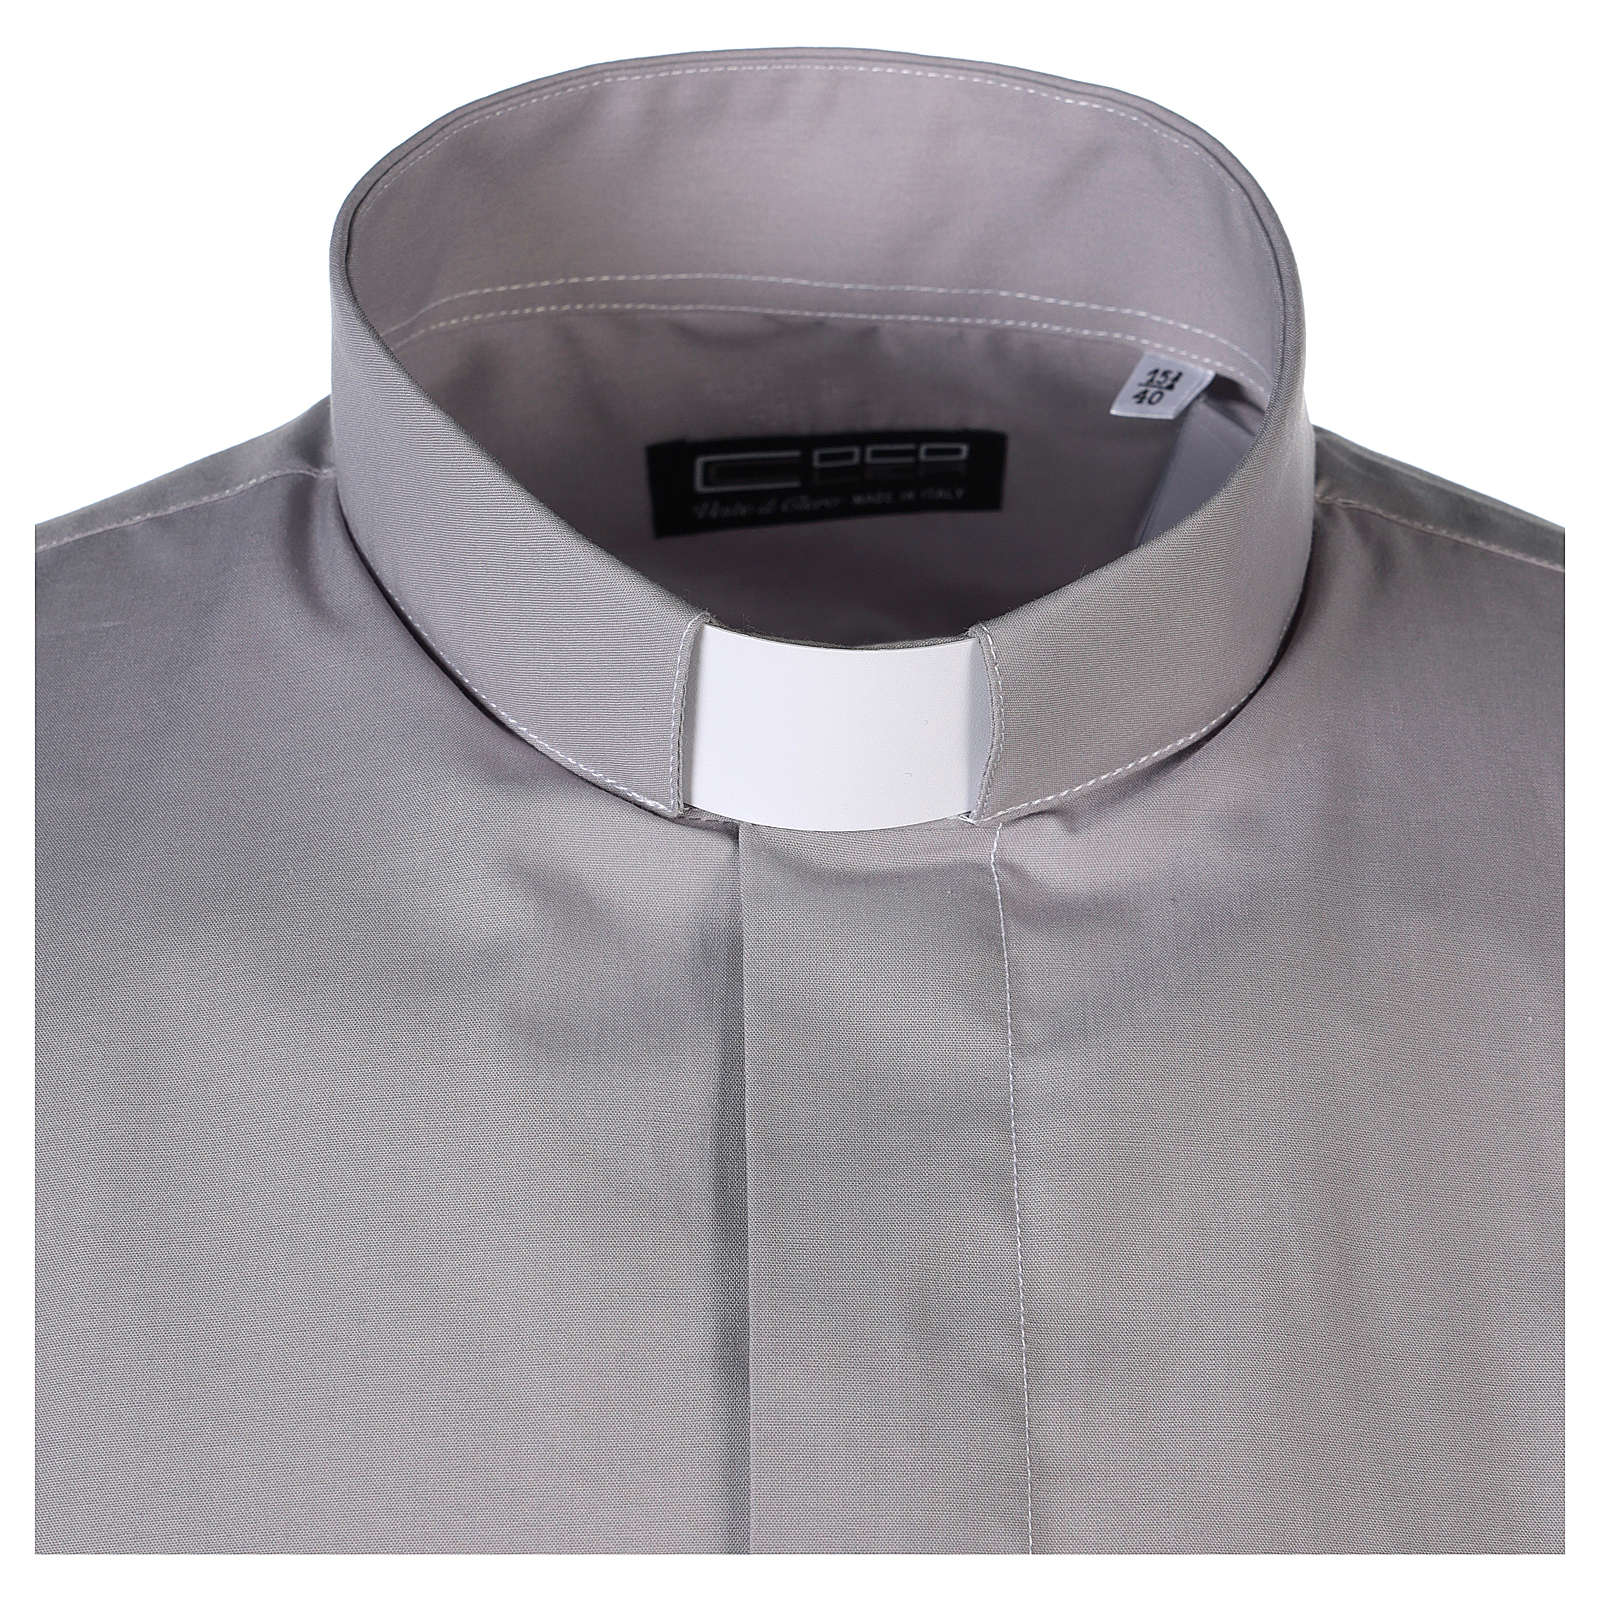 Clergy shirt long sleeves solid colour mixed cotton Light Grey 4